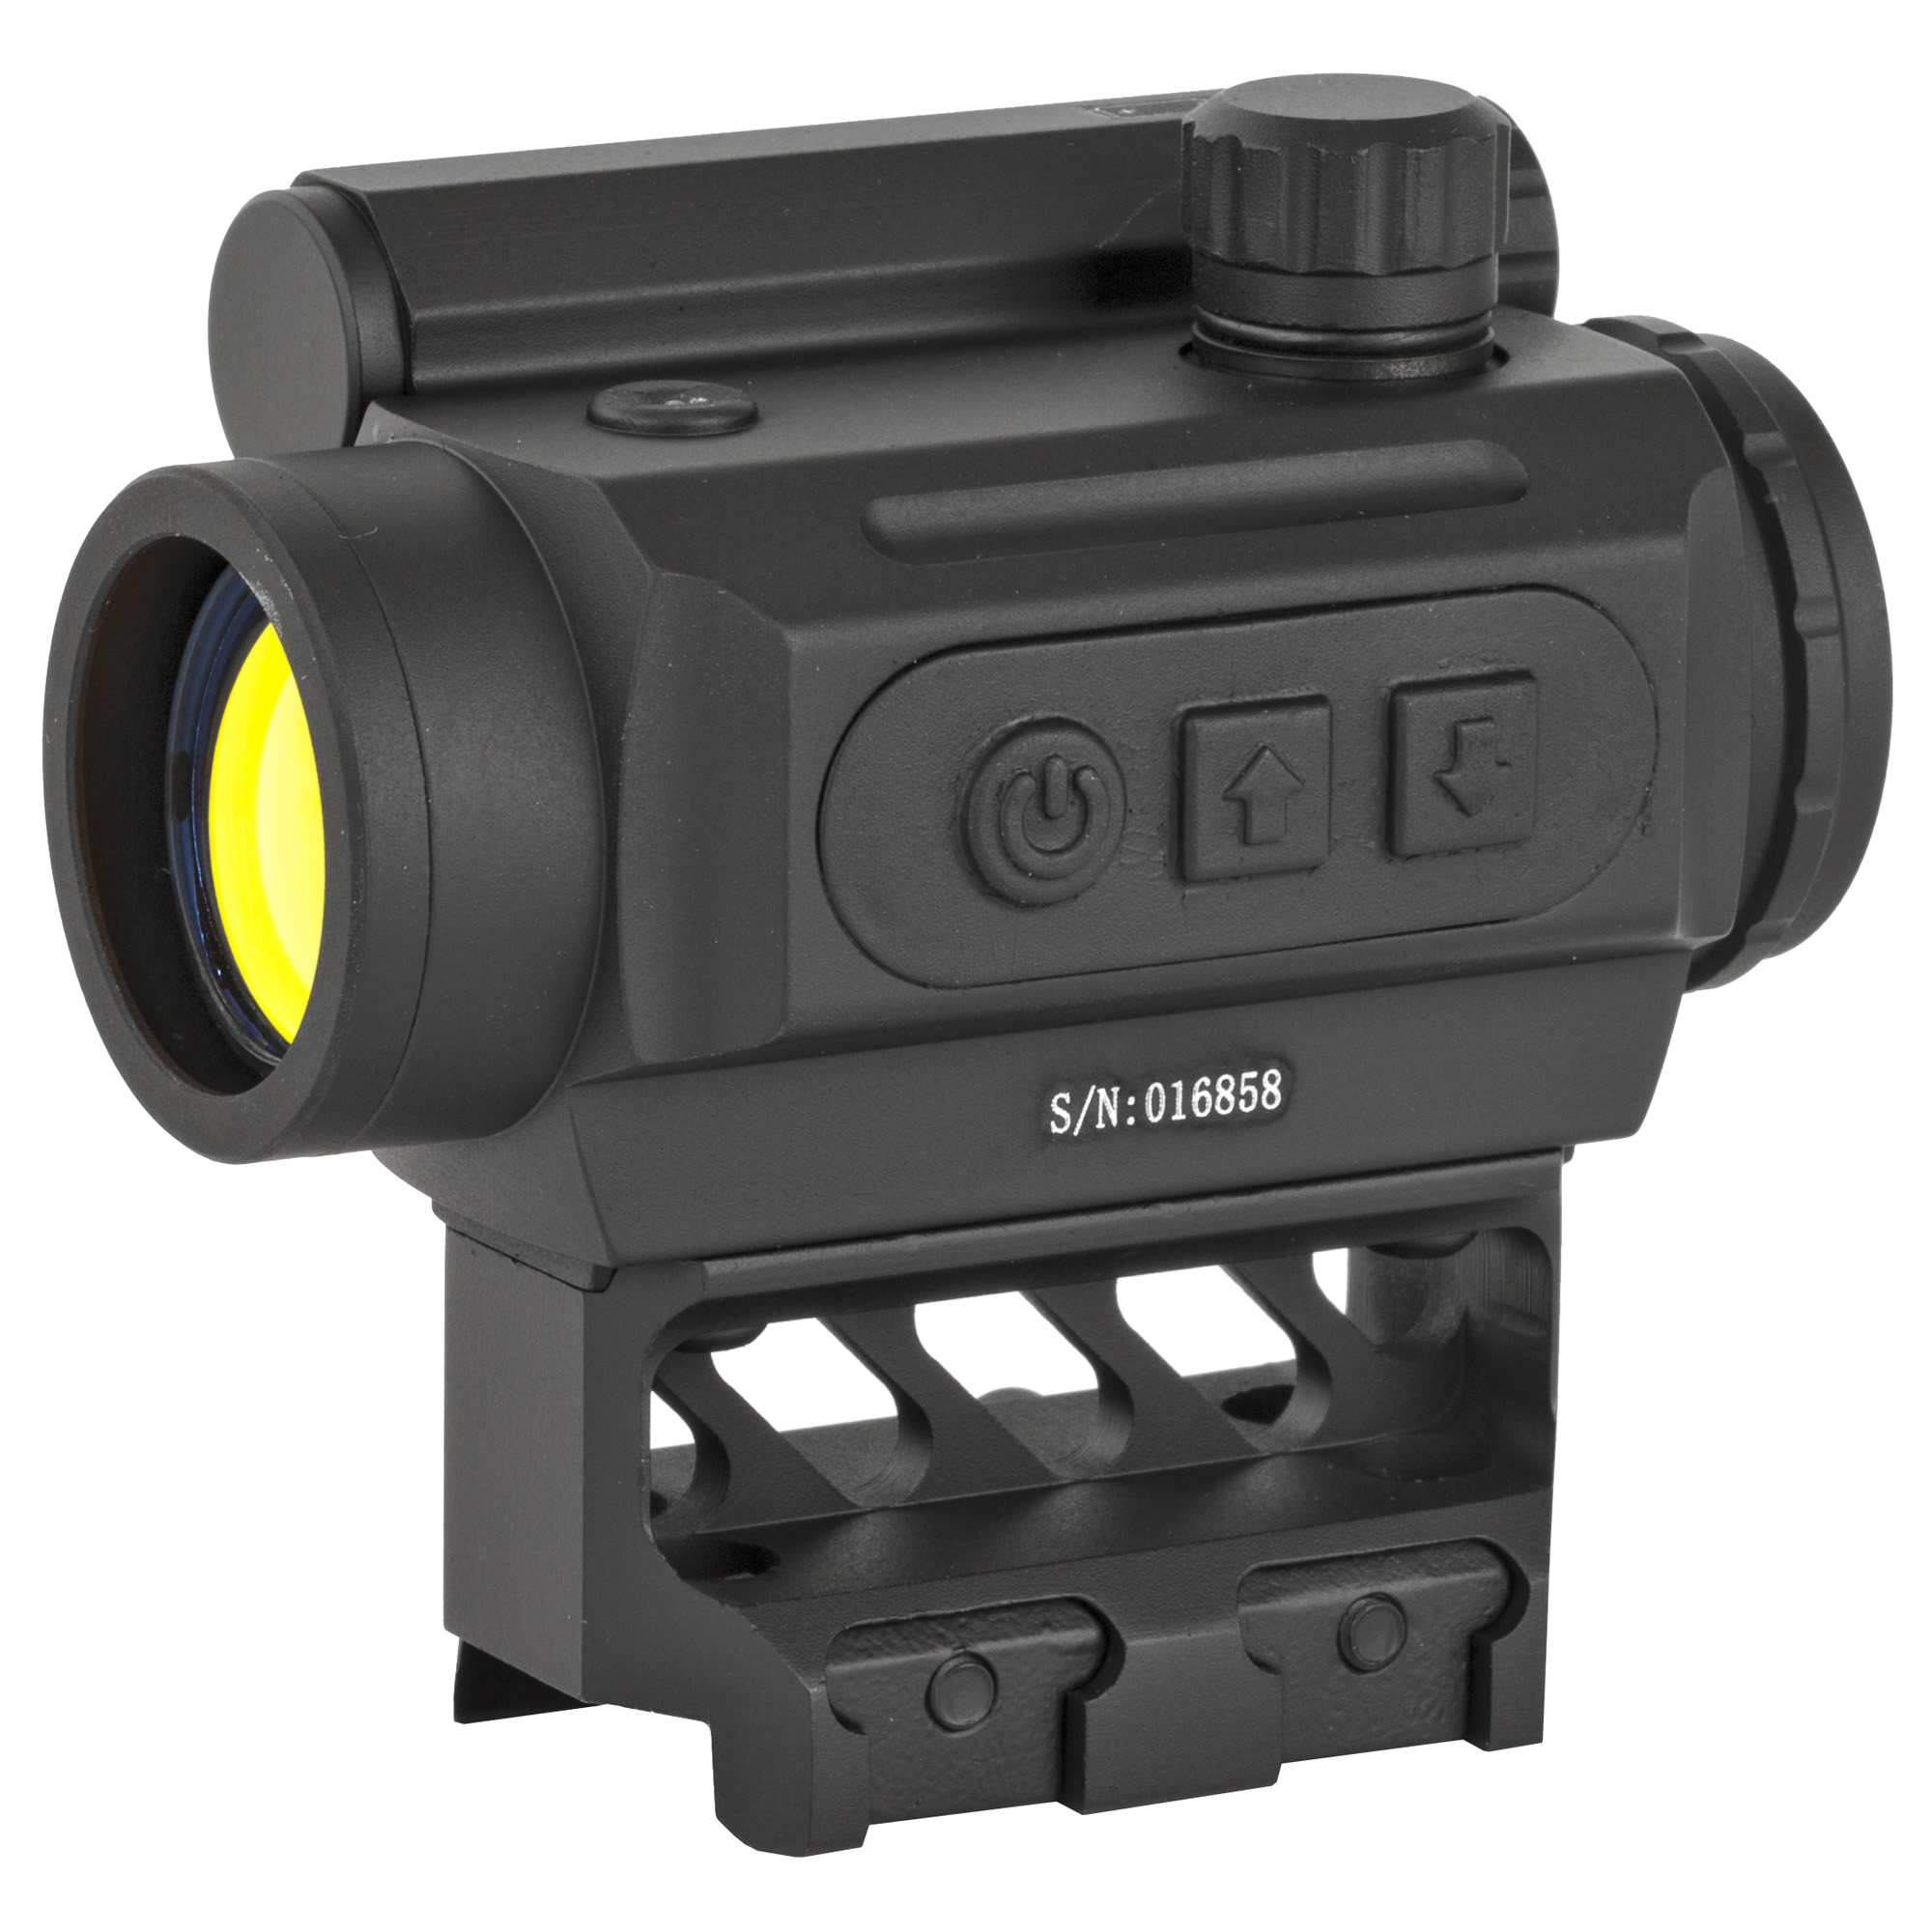 """The Micro Red Dot Optic is customized for a perfect Picatinny rail fit on your AR-15. The sight features an advanced ambient light filter with auto-dimming capabilities and an auto-shut off feature to preserve battery life. It is a one piece optic with an aluminum nitrogen-purged tube that allows for a lower 1/3 co-witness. With a 3 MOA red dot and an anti-reflective coating"""" you'll find the Micro Red Dot to be a competitive sight to those on the market. Allen key"""" rubber bikini cover"""" AAA battery and a 1-year replacement warranty are included. If you want a durable yet affordable micro red dot sight"""" look no further than Black Spider Optics."""